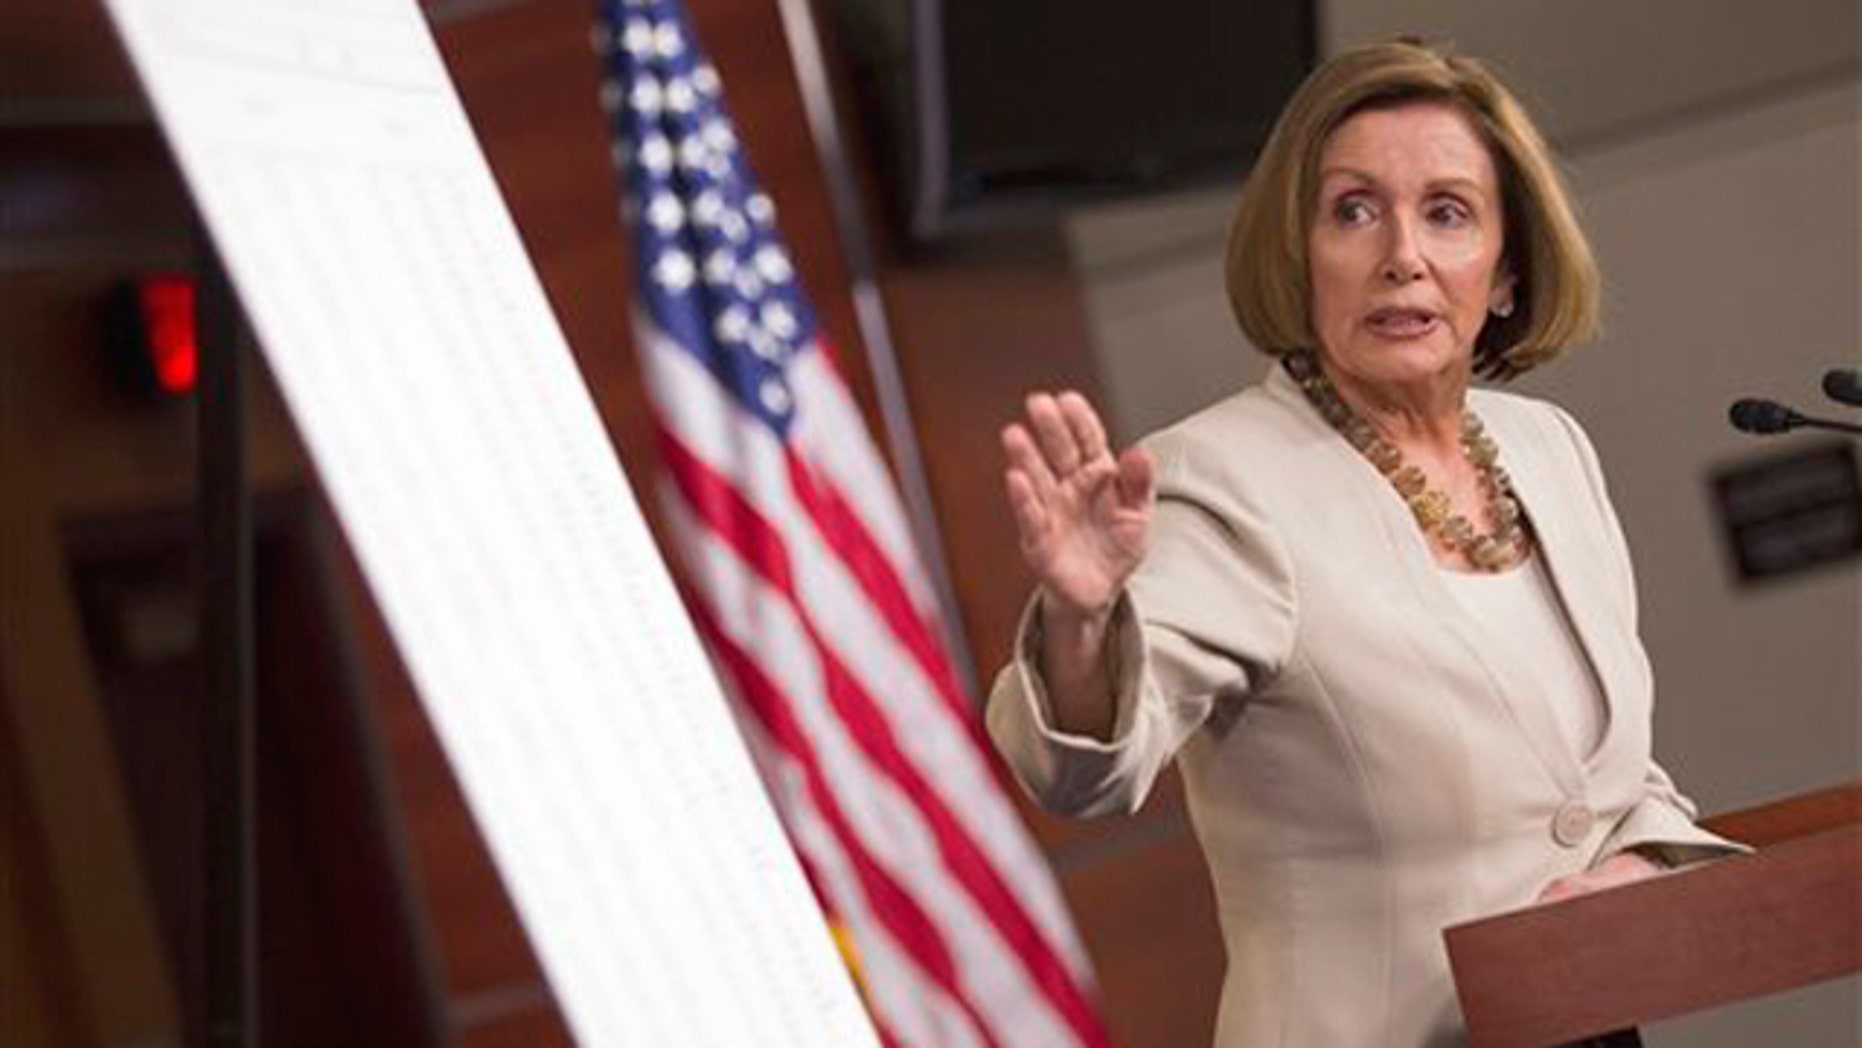 House Minority Leader Nancy Pelosi points to a chart during a news conference on Capitol Hill in Washington May 12.